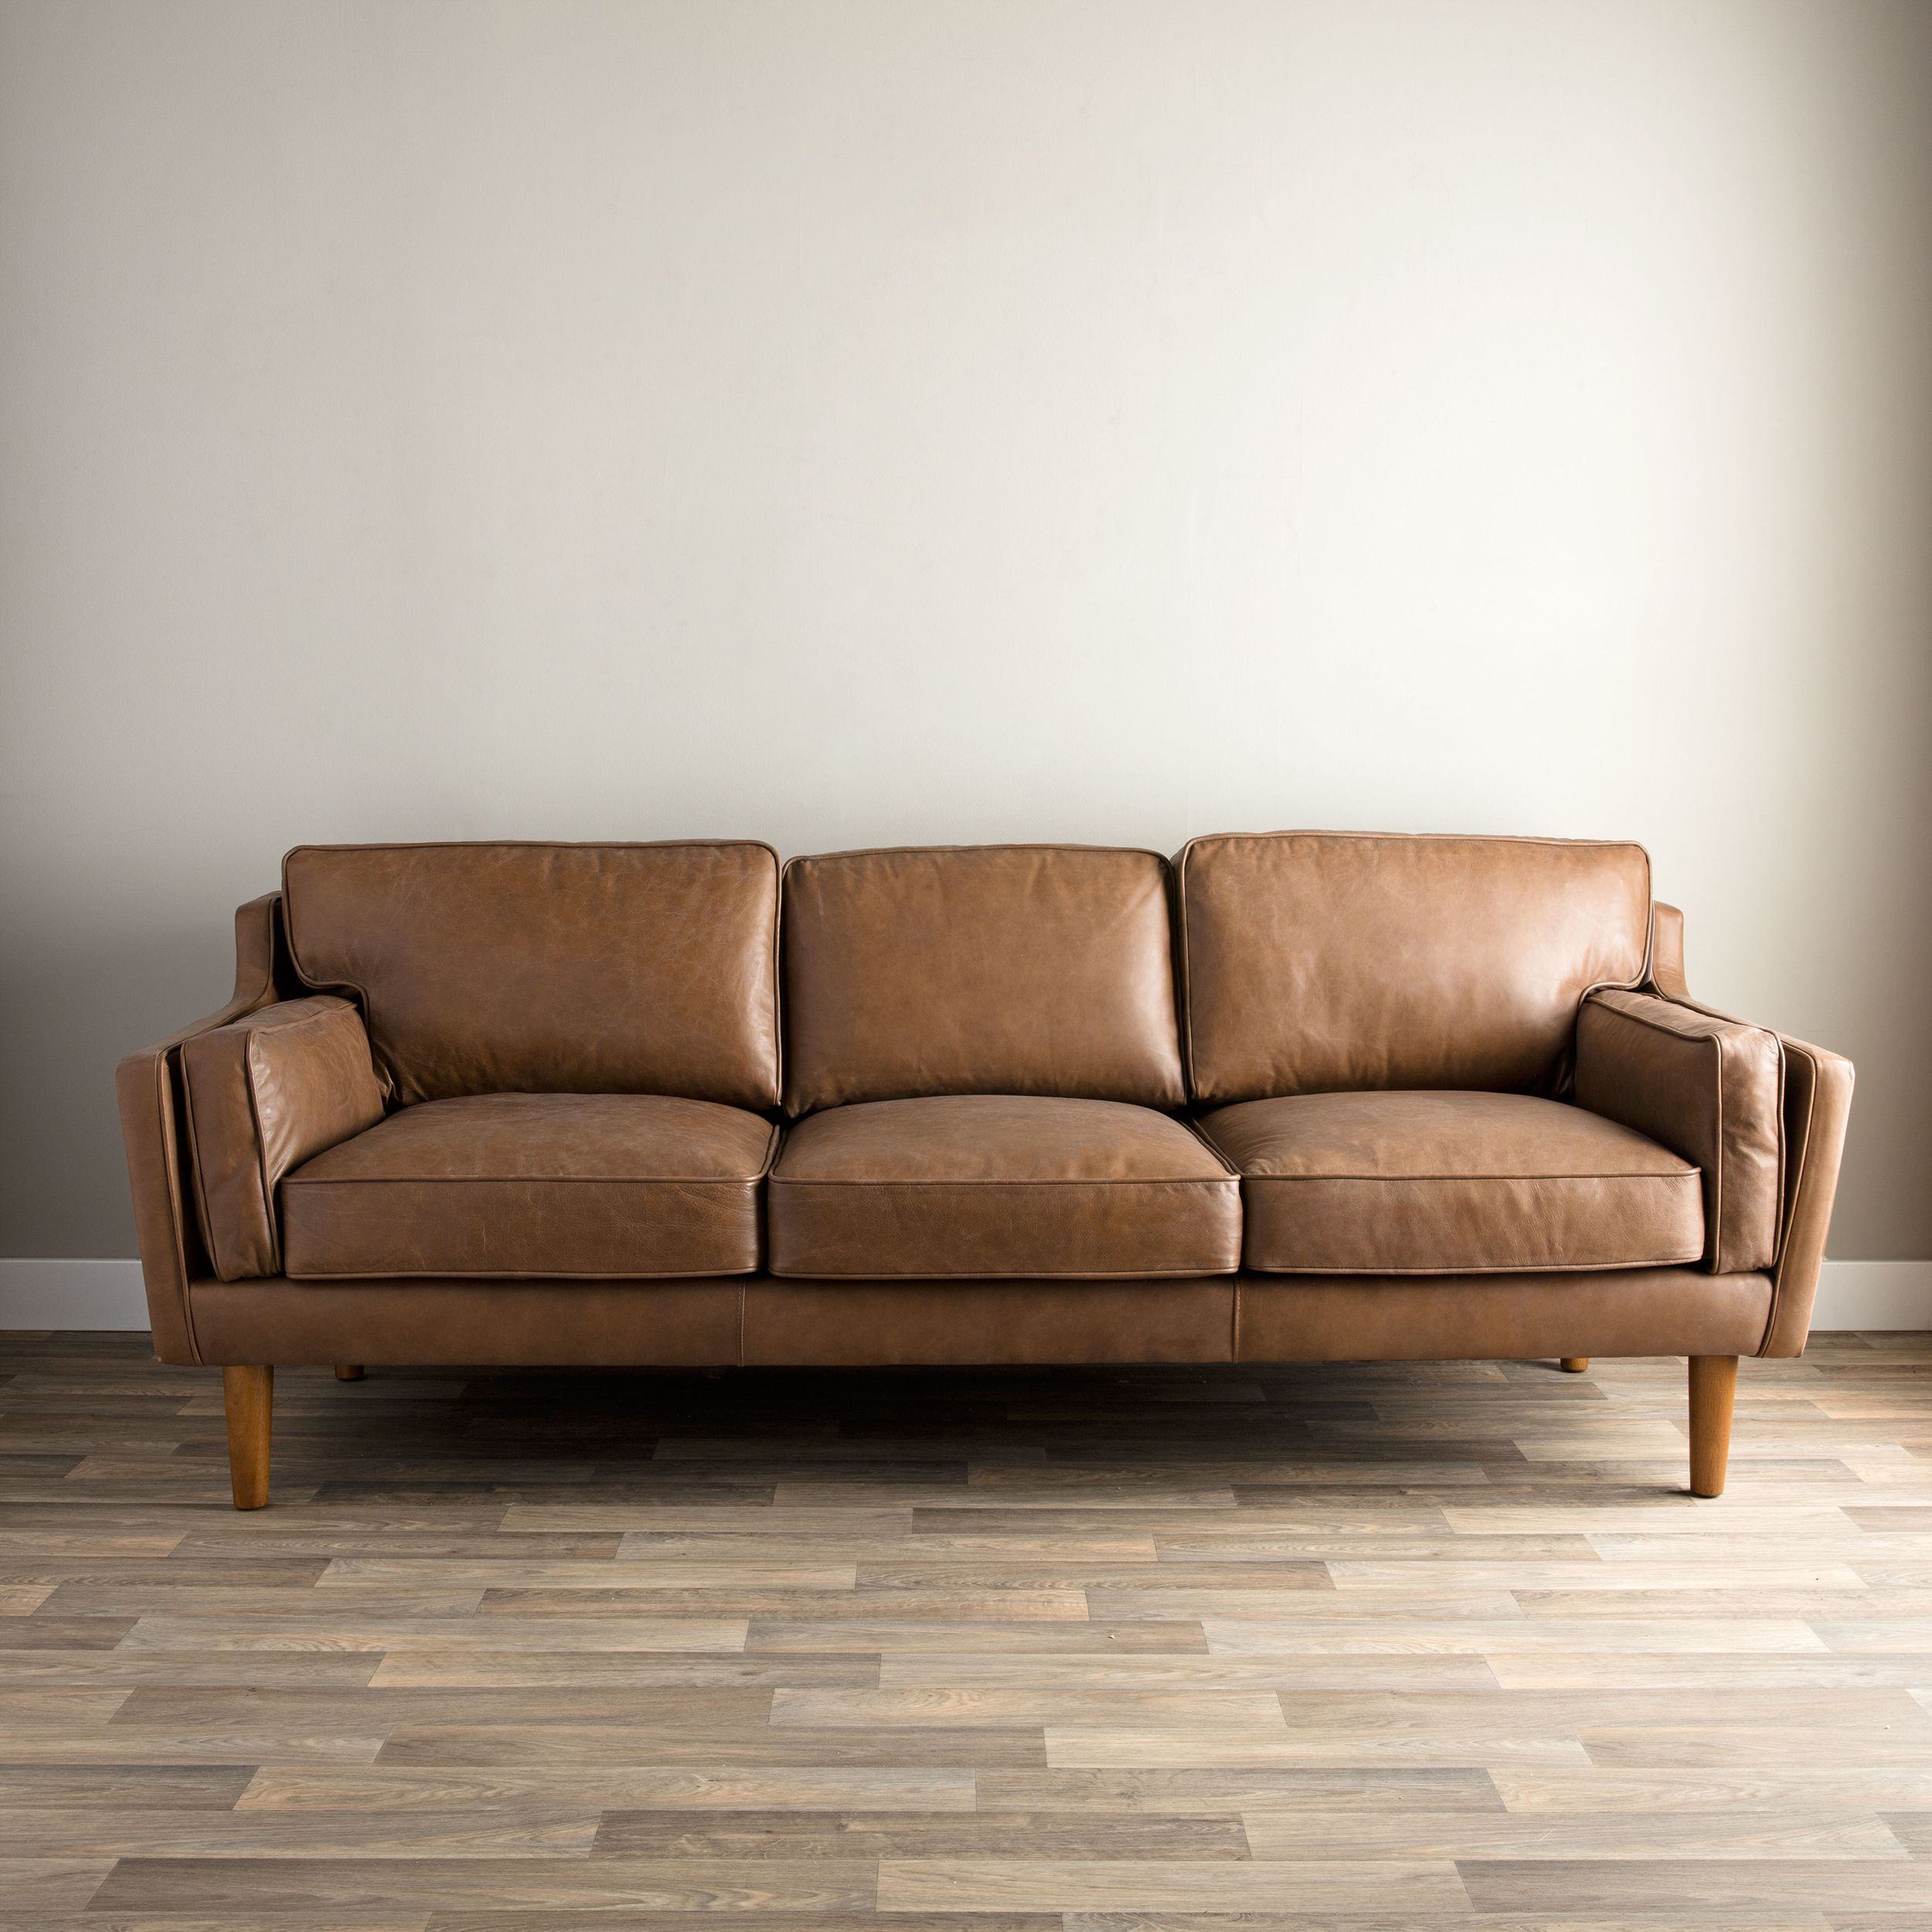 Luxurious Sofa